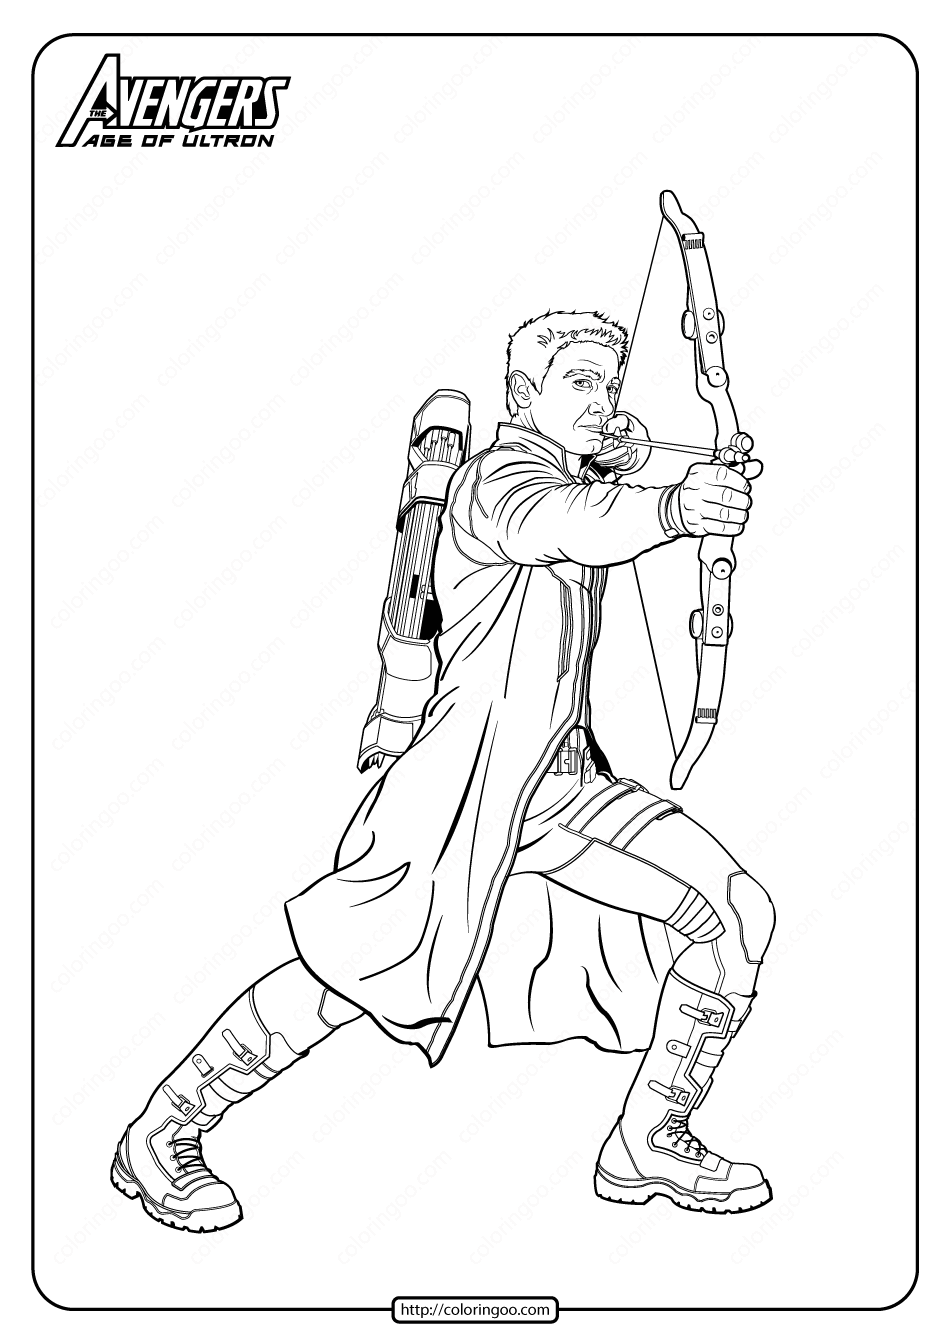 Marvel Avengers Hawkeye Pdf Coloring Pages In 2020 Avengers Coloring Pages Marvel Coloring Coloring Pages